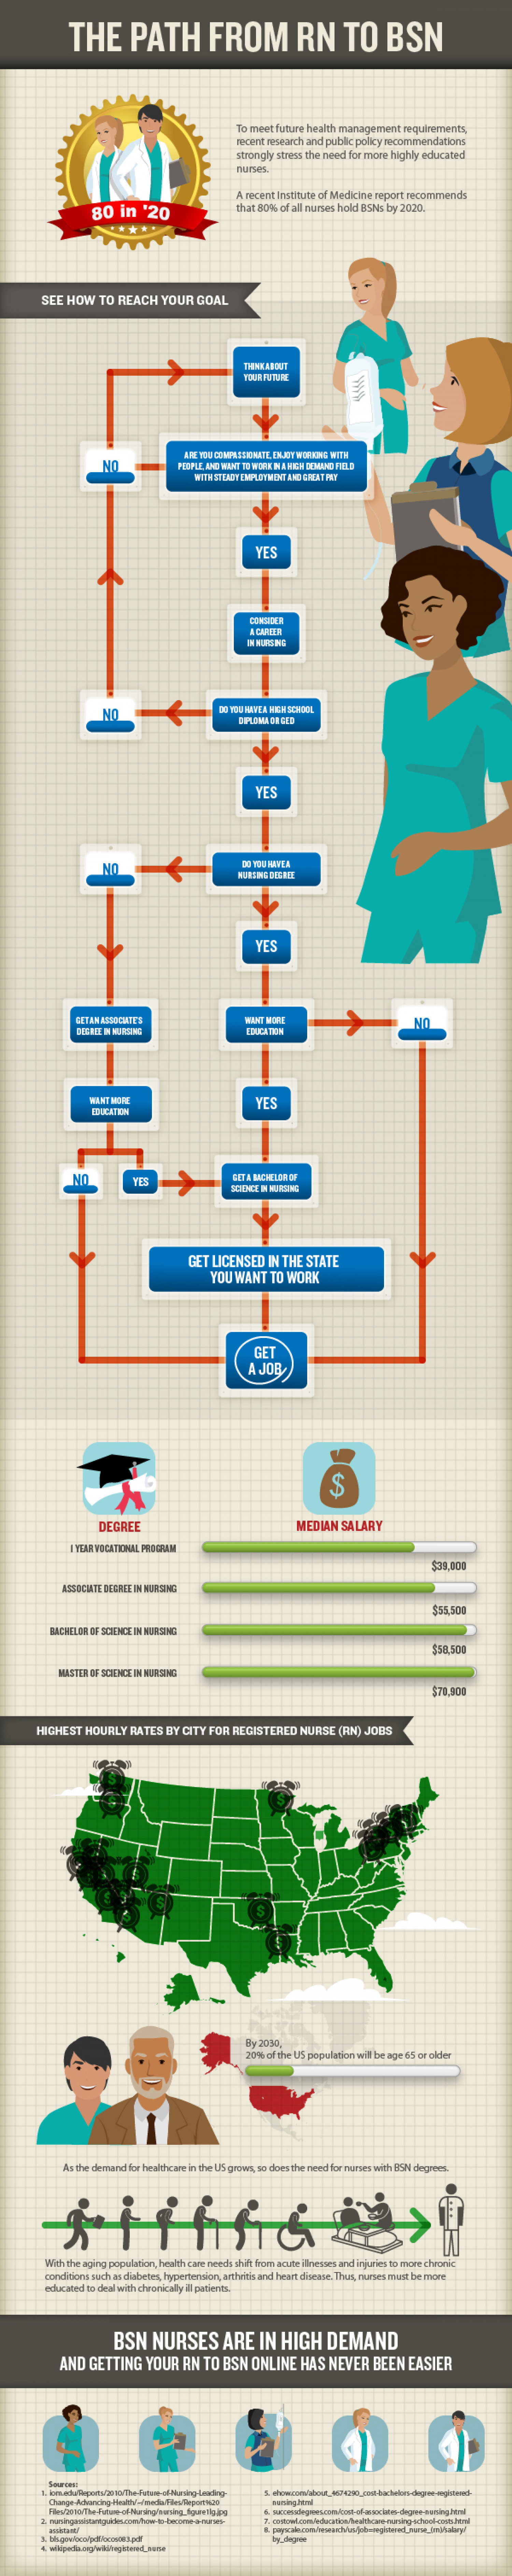 The Path From RN to BSN Infographic